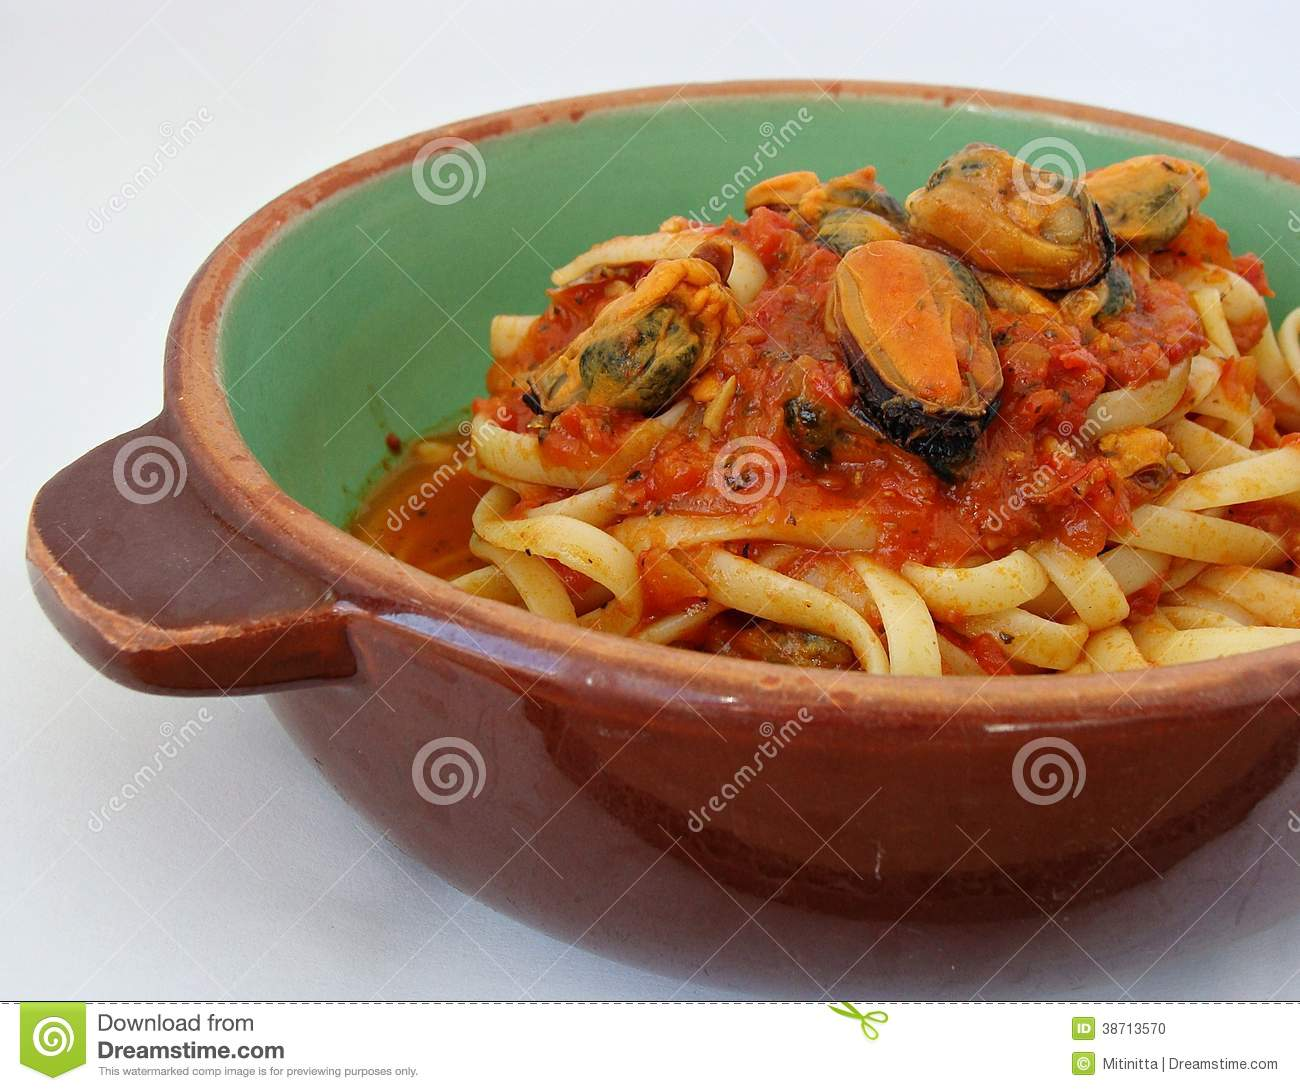 Shelled mussels with pasta and a homemade spaghetti sauce.